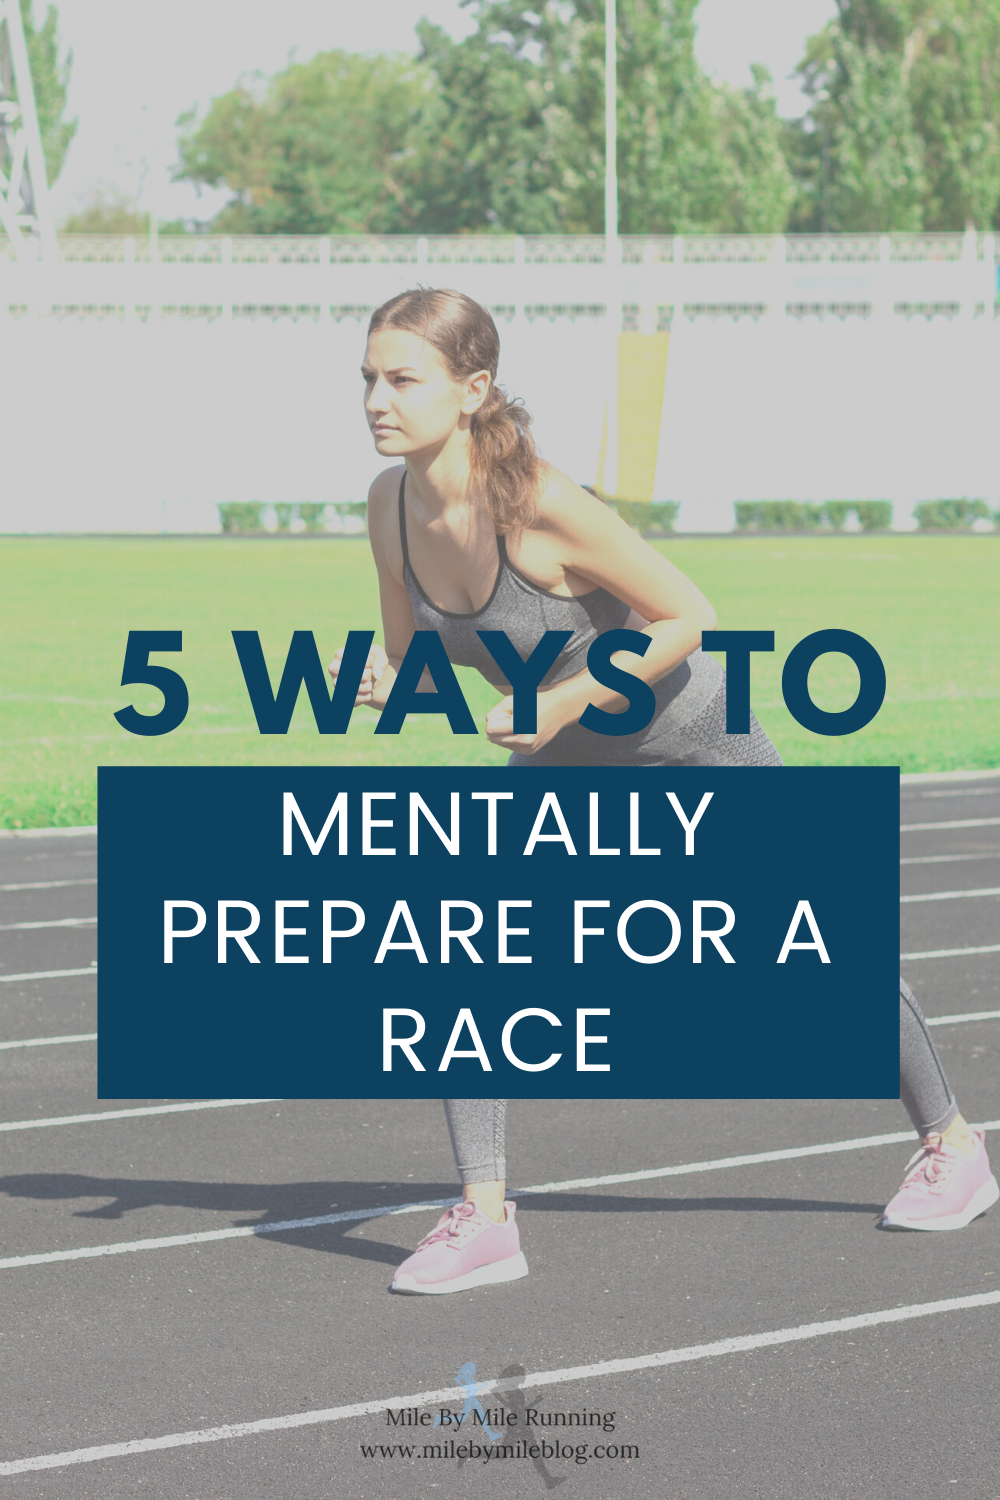 It's just as important to mentally prepare for a race as it is to physically prepare. Try the 5 strategies to get you ready to stay focused and mentally strong on race day.